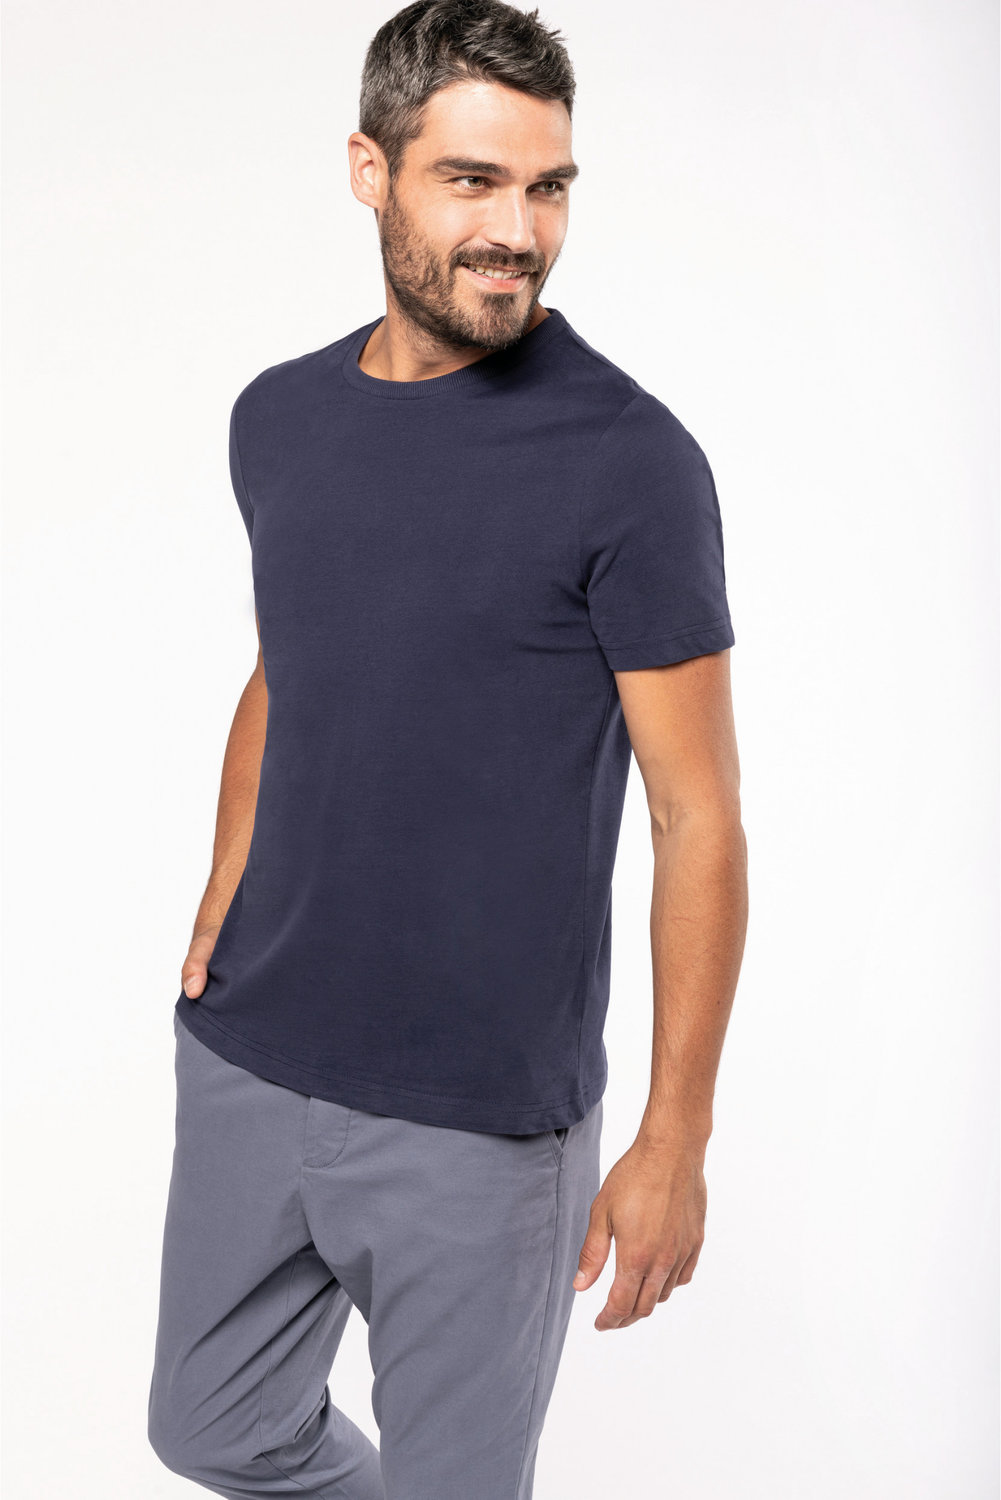 Tee-shirt vintage manches courtes homme